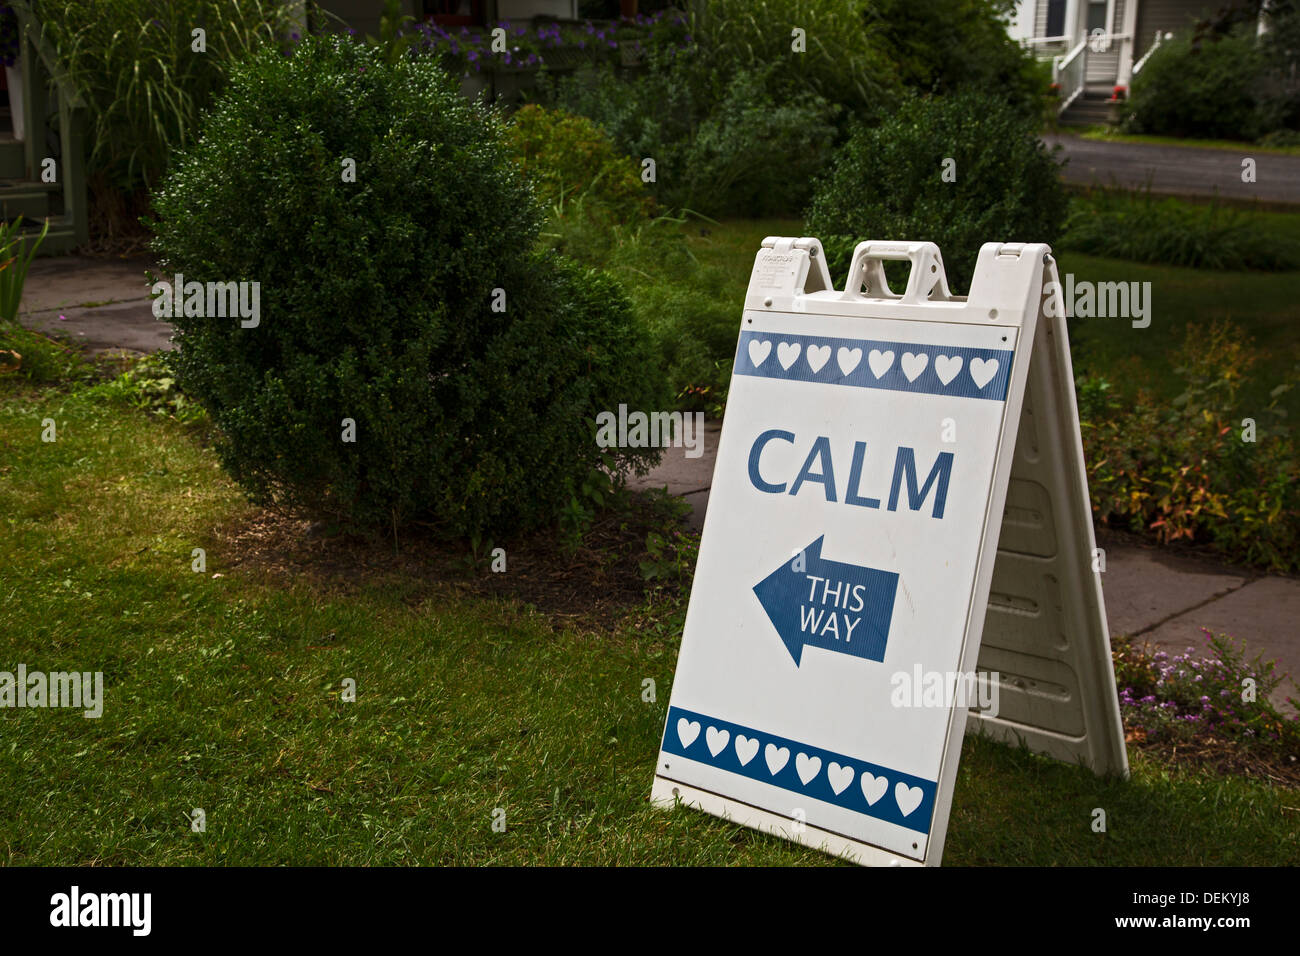 Woodstock, New York - A sign on Woodstock's main street points towards calm. - Stock Image